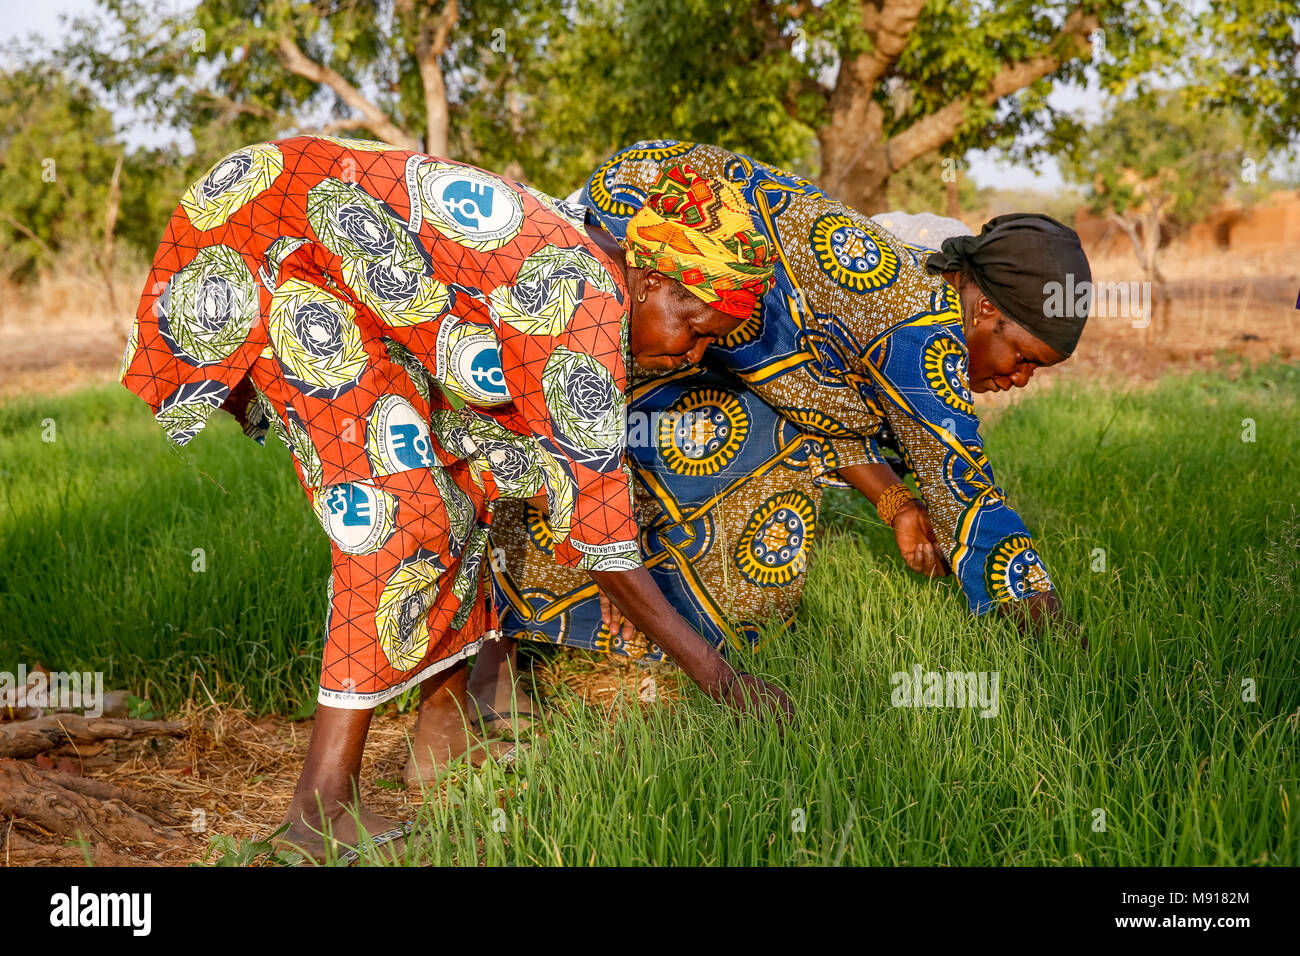 UBTEC NGO in a village near Ouahigouya, Burkina Faso. Members of a cooperative at work in a vegetable garden. - Stock Image